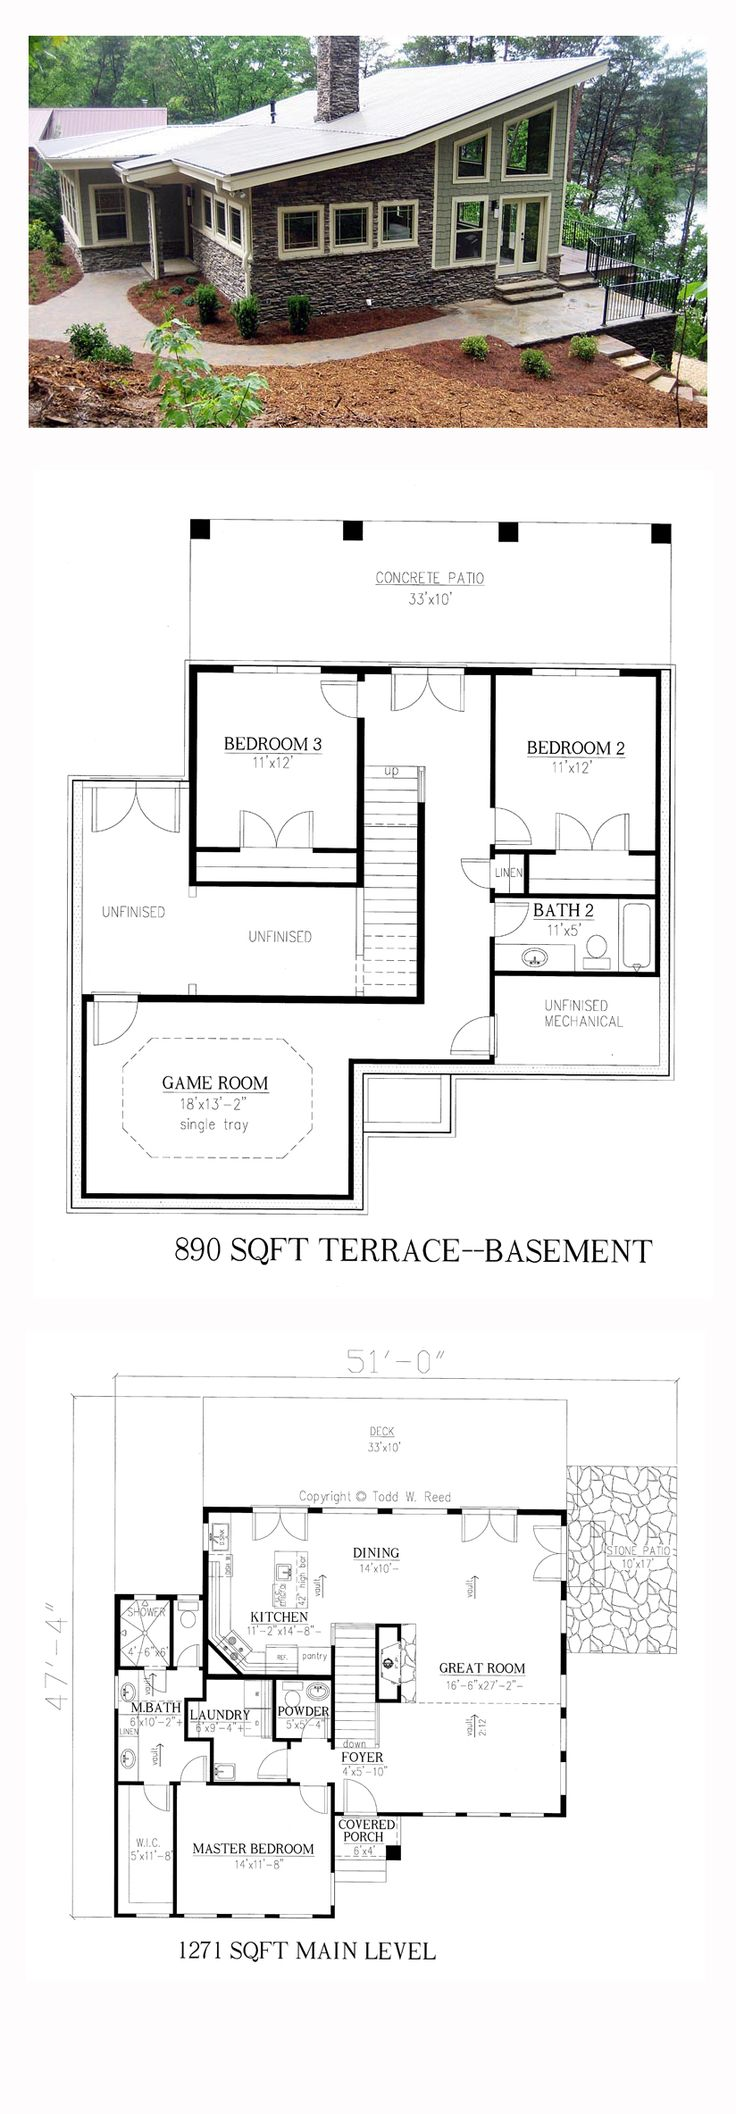 2 Bedroom Lake House Plans Amazing House Plans